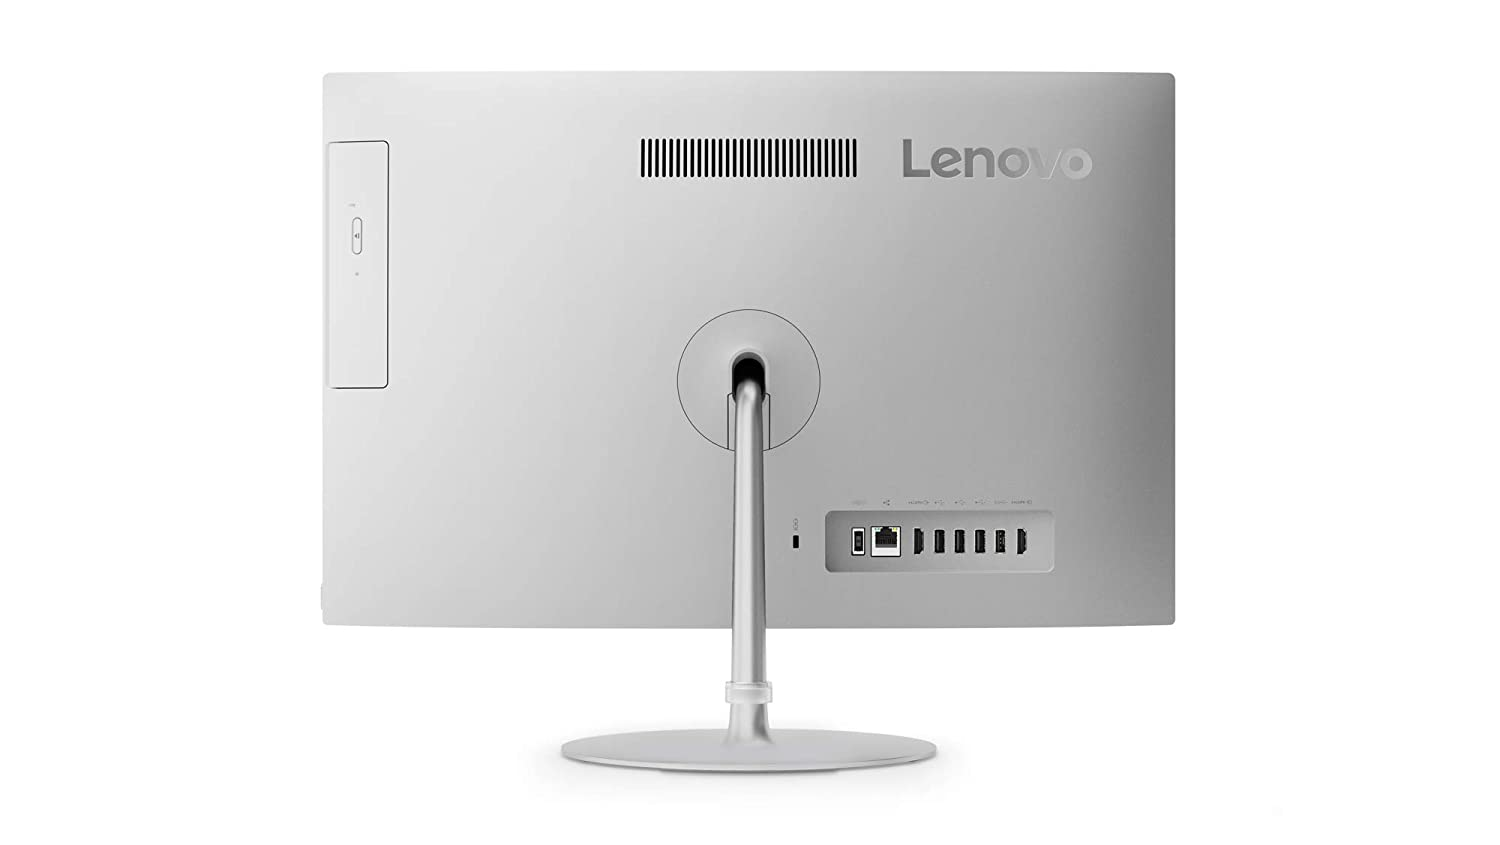 9147cb9cbd5 Amazon.in: Buy Lenovo 520 22ICB AIO 21.5-inch All-in-One Desktop (8th gen  Core i5-8400T/8GB/2TB/Windows 10 Home/Integrated Graphics), Silver Online  at Low ...